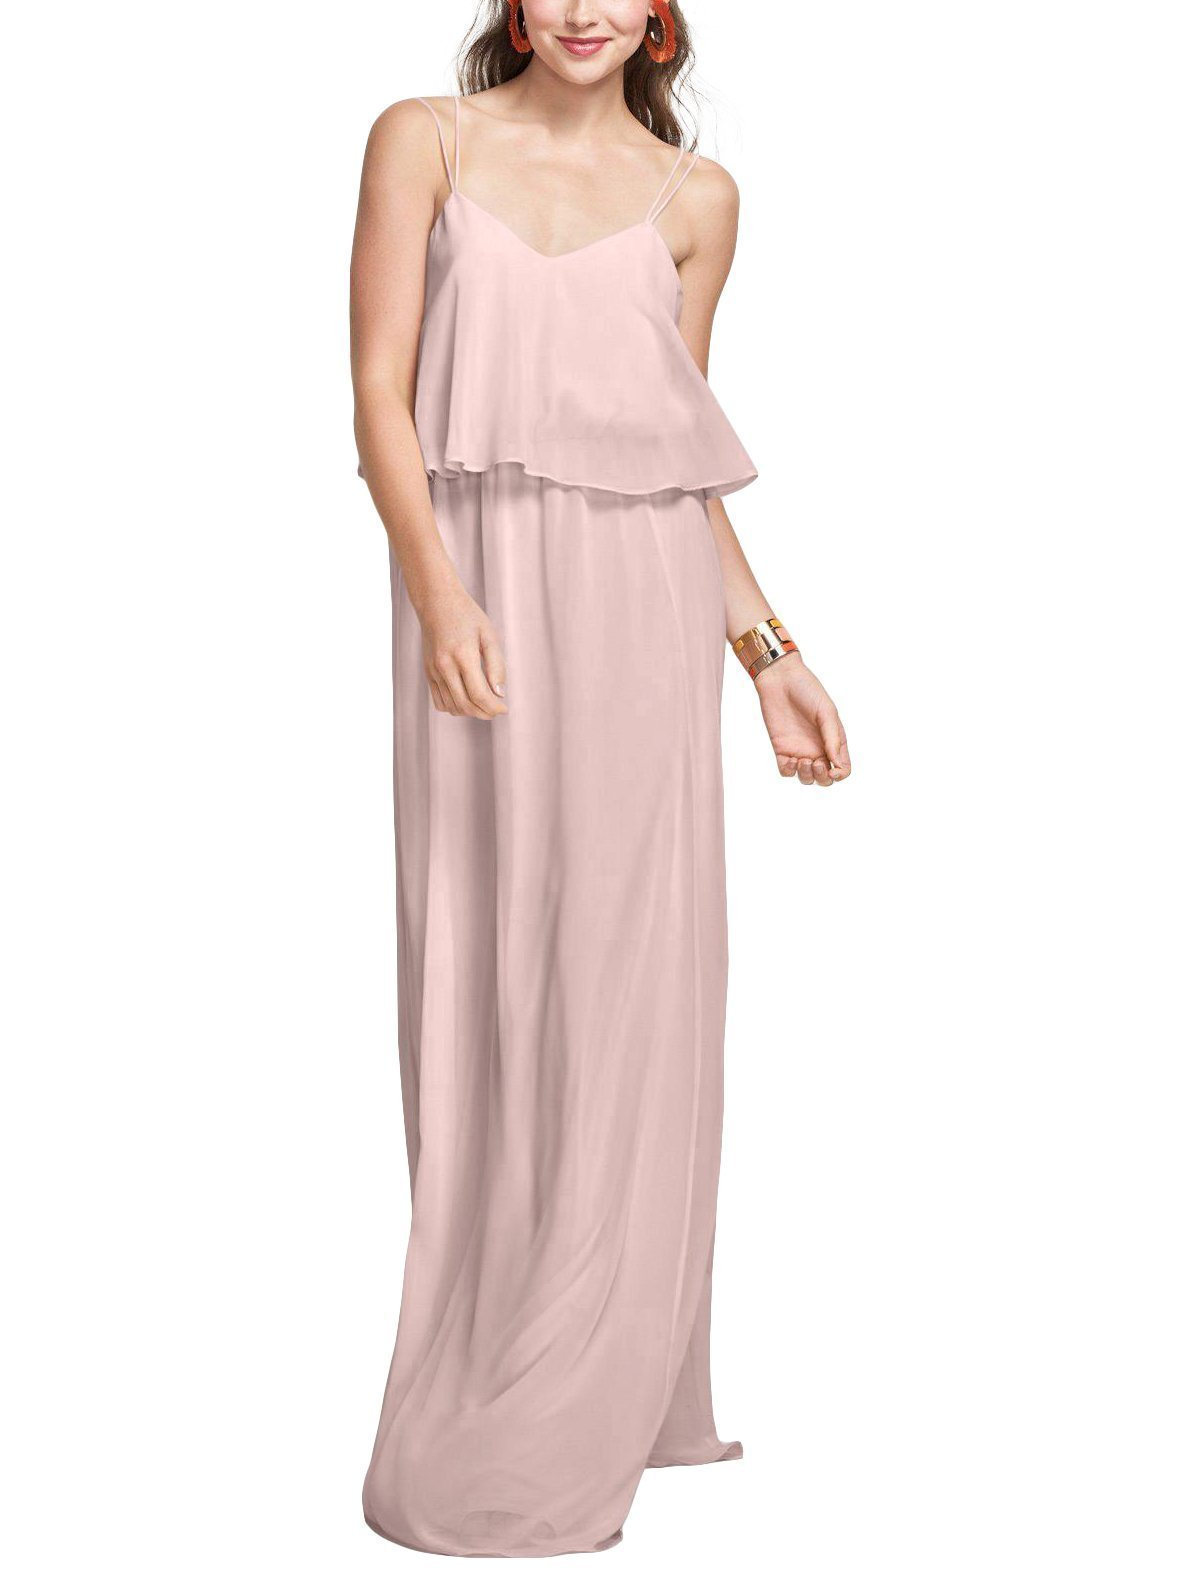 Tea Rose Bridesmaid Dress